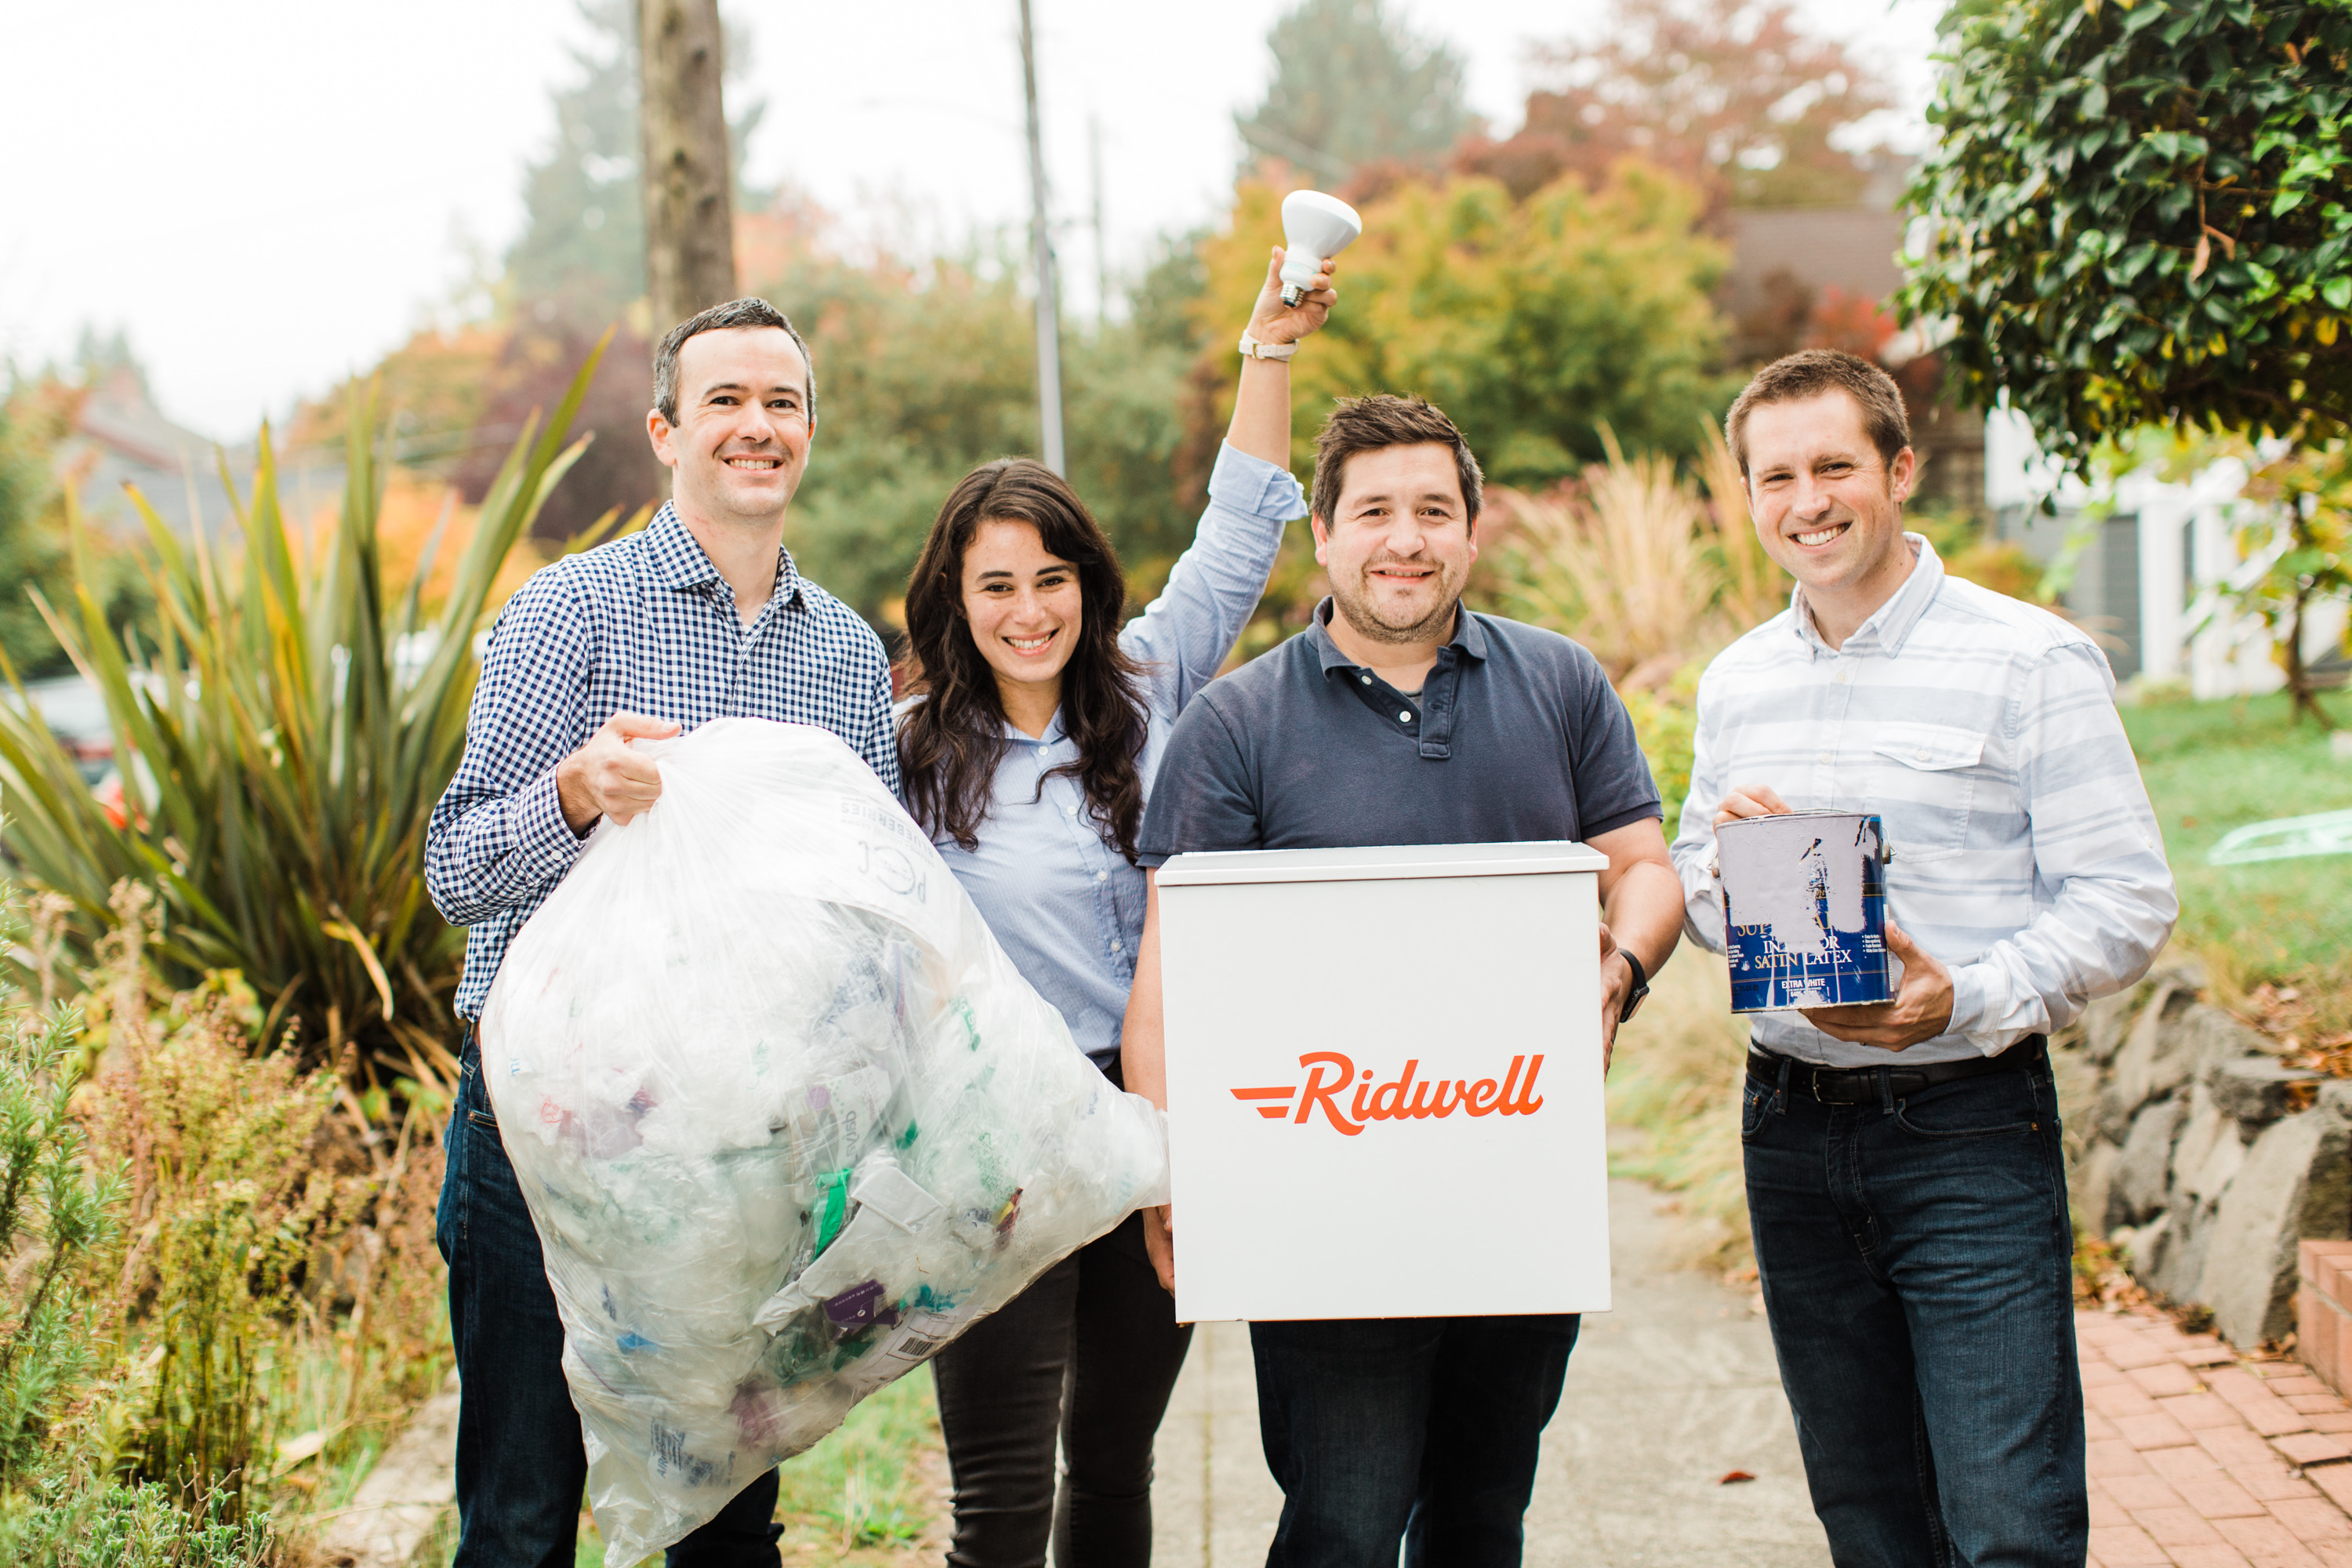 The founders of Ridwell with some of the stuff they take. Left to right;{ }Ryan Metzger, Aliya Marder, Justin Gough, and David Dawson. (Image:{ }Marissa Ciccarelli)